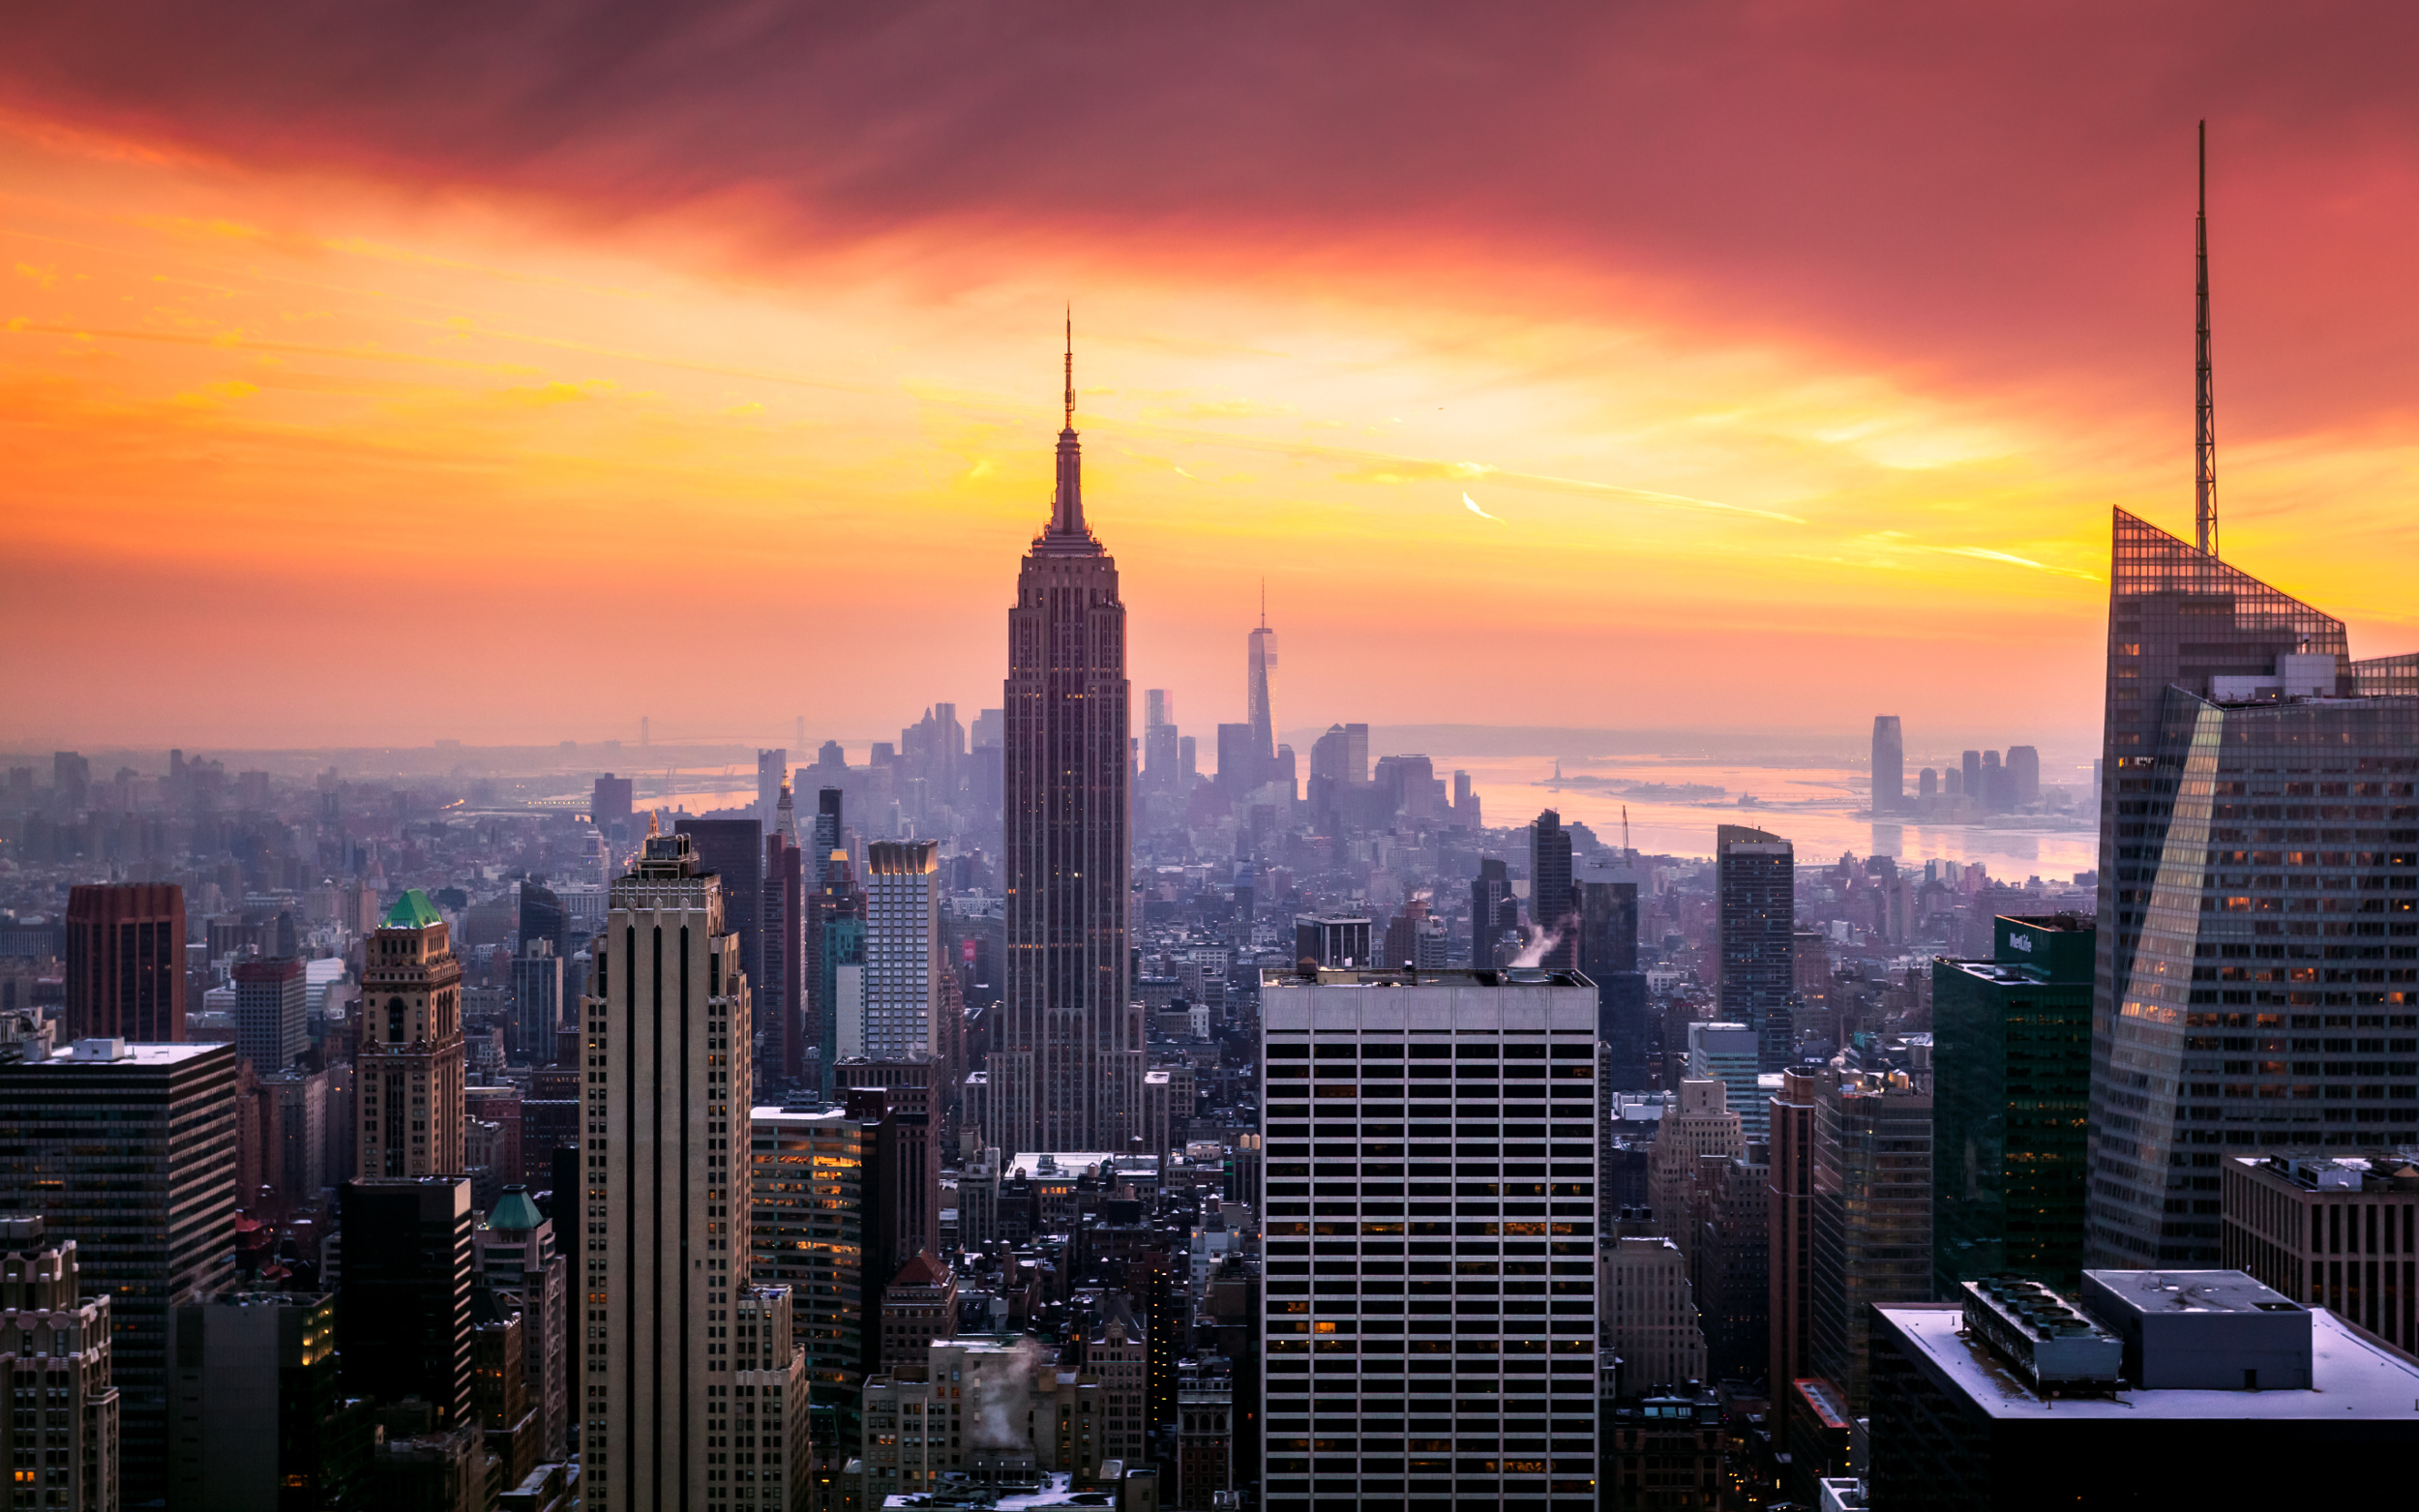 The Empire State Building was the most popular tourist attraction in New York.